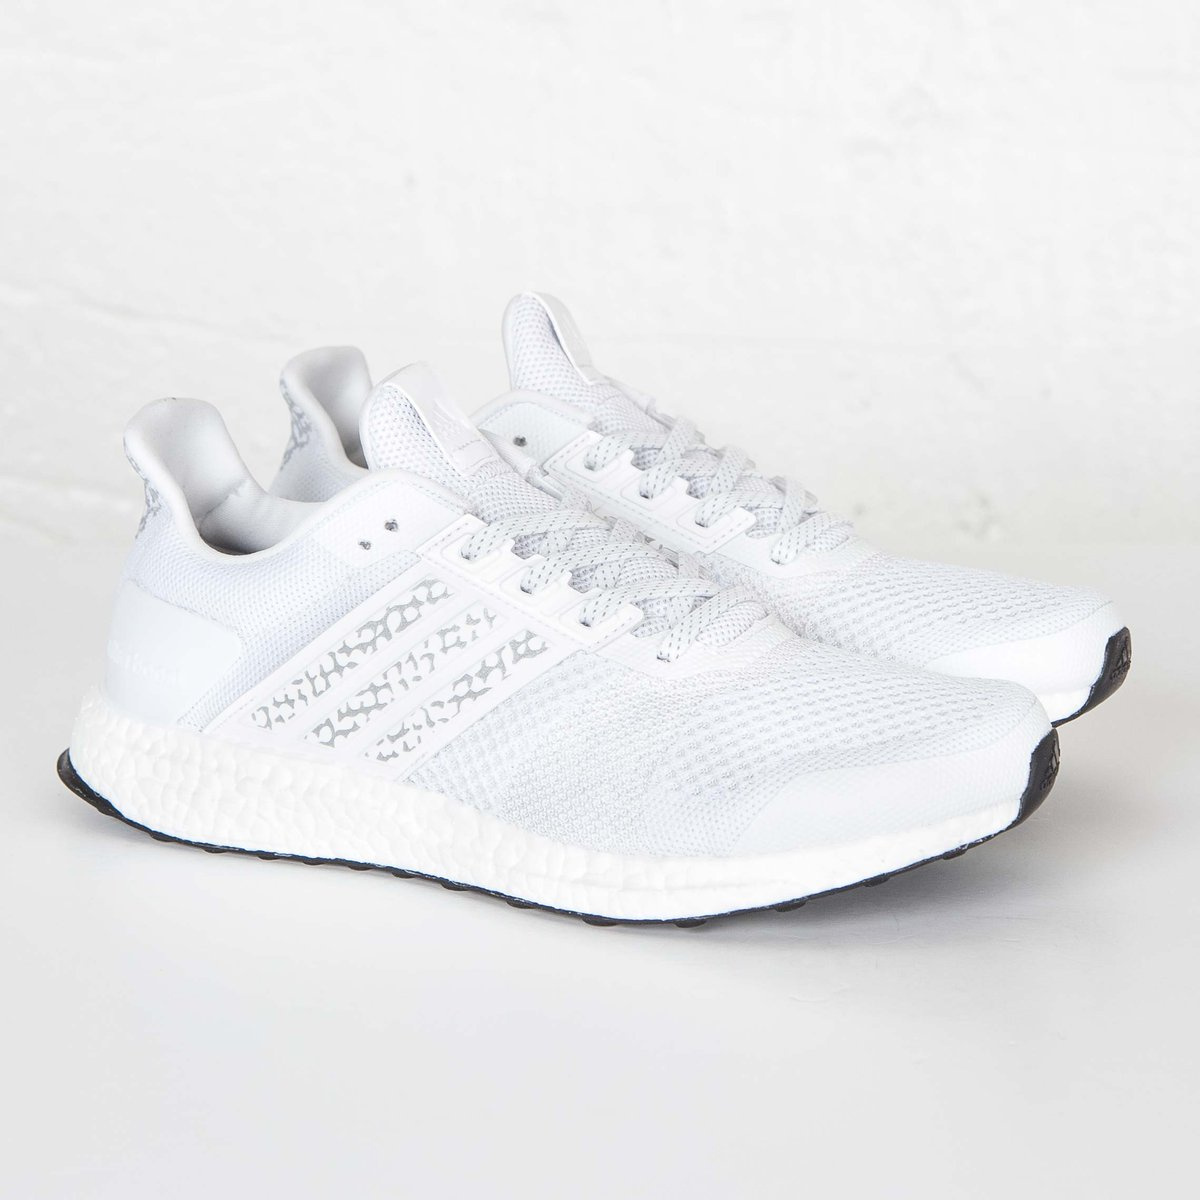 big sale 09a0b 9db41 adidas ultra boost core black ebay | Adidou